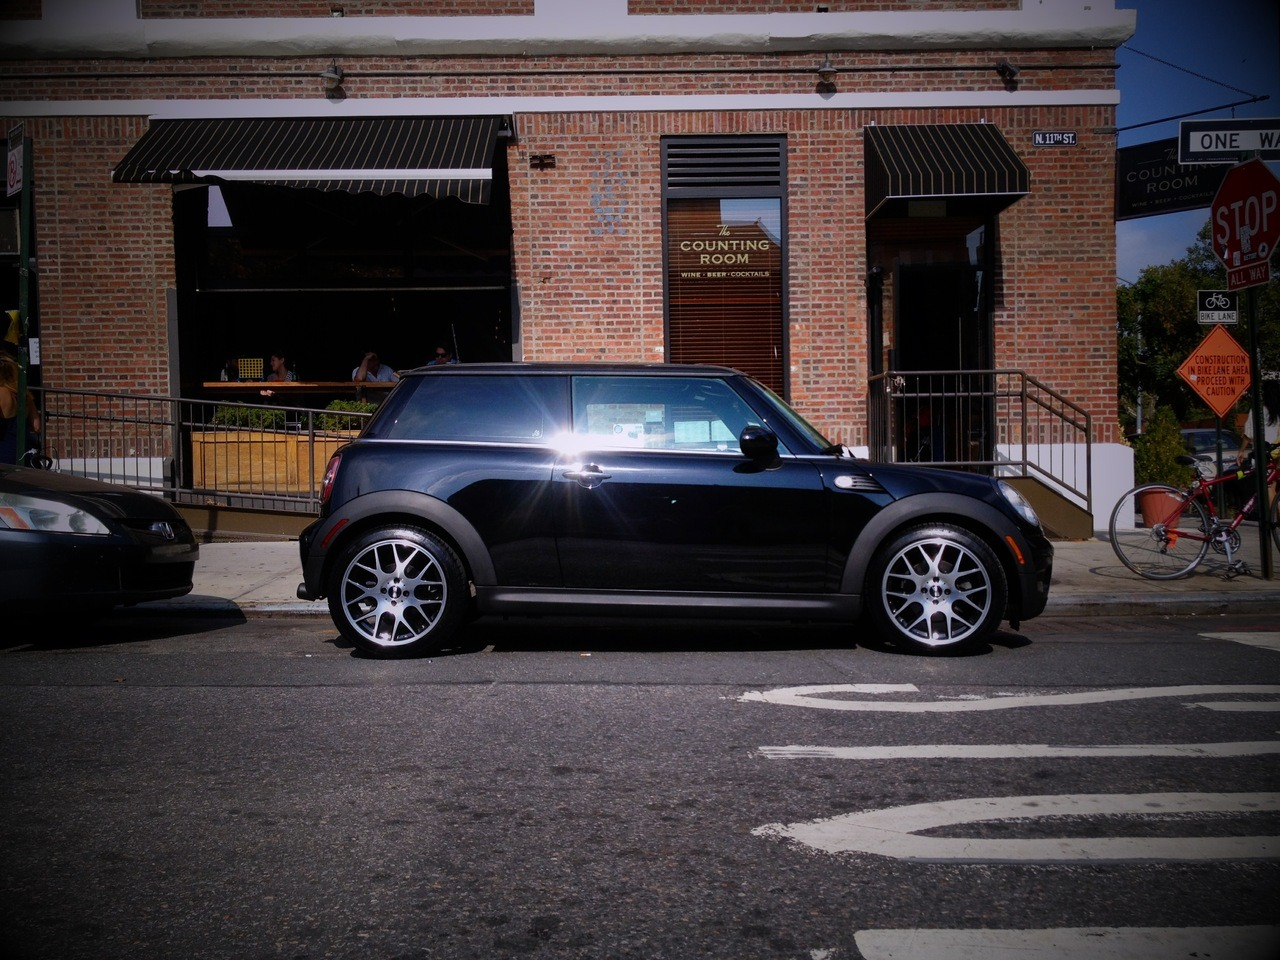 I bought a car this weekend— a 2010 Mini Cooper Hardtop. Life in NYC is interesting. You typically stay in the same neighborhoods and go to the same places because, well, it's familiar and it's easy to get to via the subway. But that leaves whole swaths of NYC and its' wonderful neighborhoods unseen because it's just so expensive or such a pain in the butt to get to.  Not anymore. The city and the surrounding areas are mine. I've got a bike rack coming for the roof. Installing it this week. Now I can go anywhere I want with my bike on top. I'm sure more and more of my weekends will be spent outside of the city, in the countryside. I need that right now. Starting a new company is stressful and I've found just taking a breather and not working on Sherpaa on the weekends keeps me sane.  I went to the beach yesterday at Fort Tilden, just because I wanted to. I went to the driving range tonight out near Coney Island, just because I can. It's a whole new era for me and NYC.